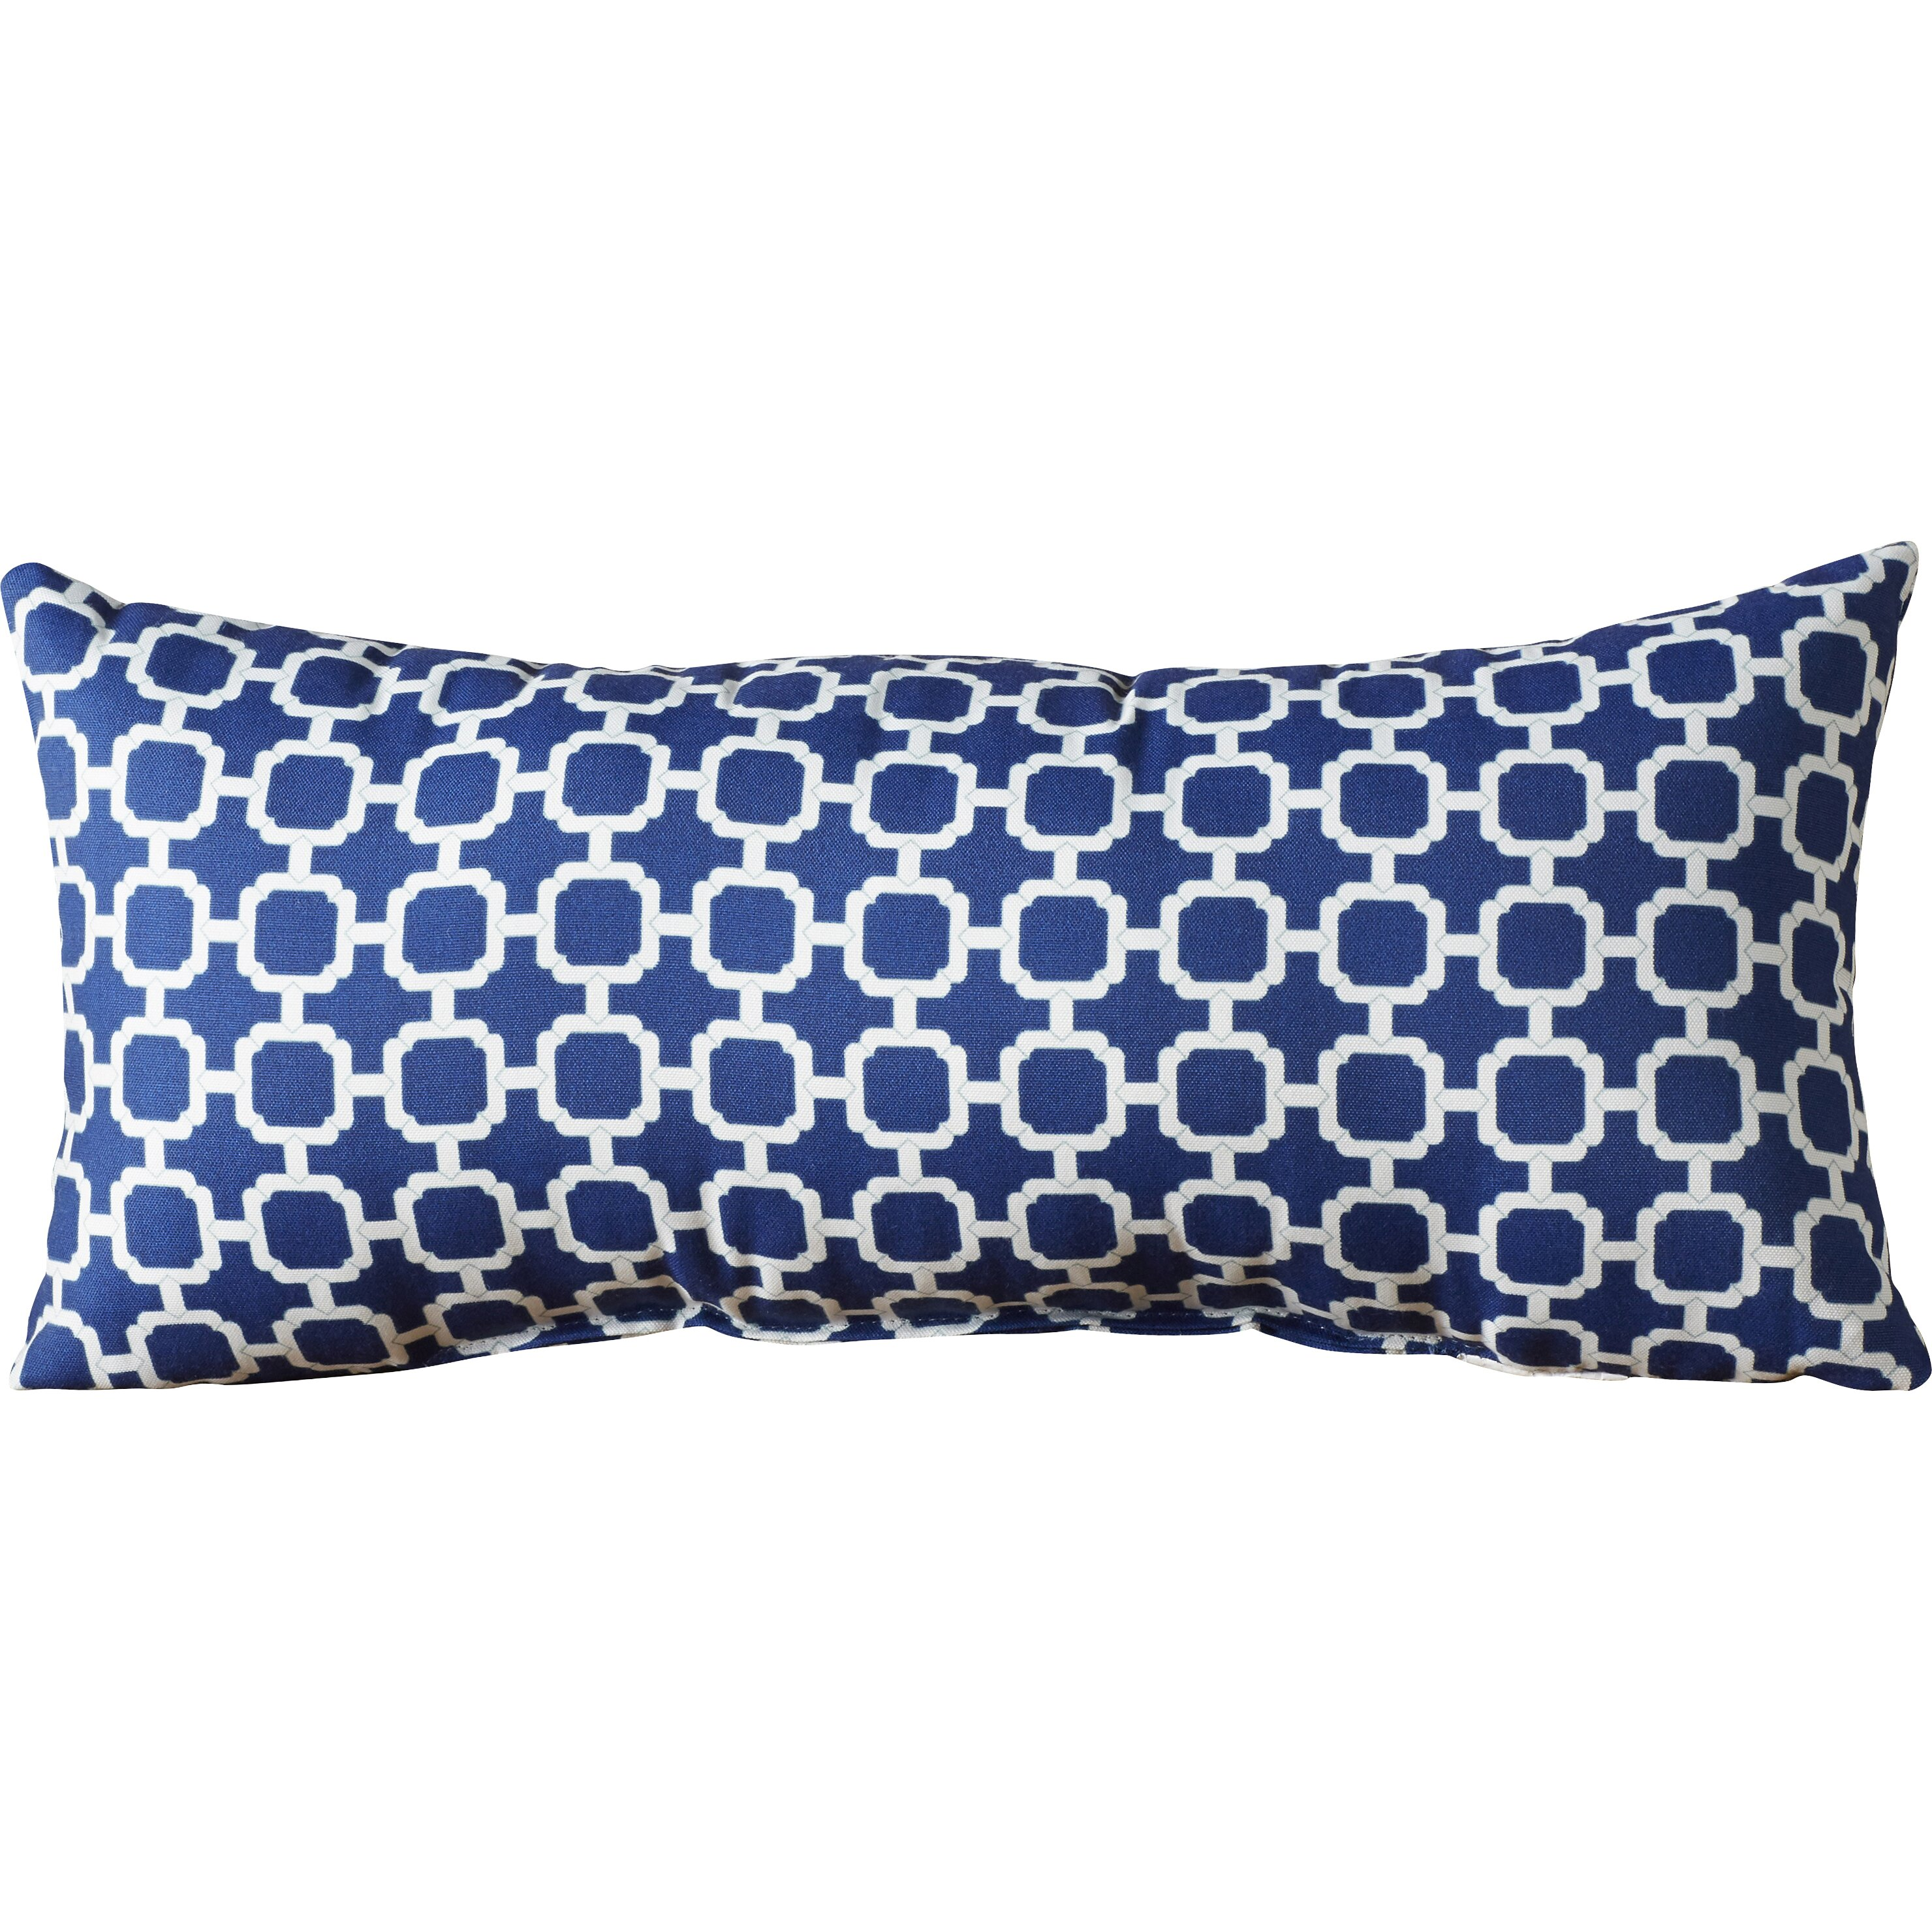 Decorative Outdoor Lumbar Pillows : Breakwater Bay Hallsboro Indoor/Outdoor Lumbar Pillow Wayfair